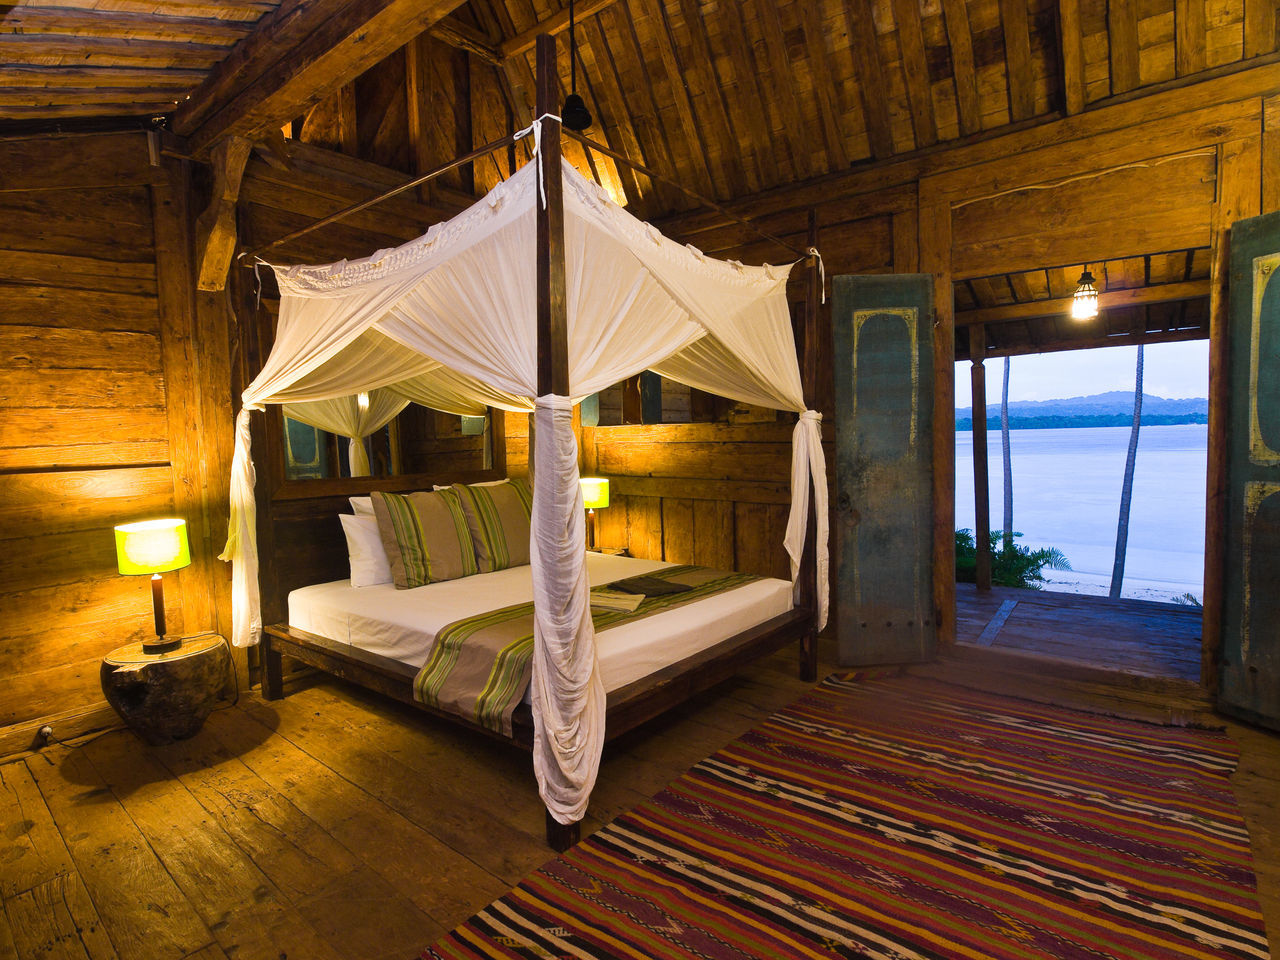 Tropical Beach Getaway Ratau Private Island Espiritu Santo Vanuatu. Architecture Bedroom Building Exterior Built Structure Bungalow On The Beach Espiritu Santo Vanuatu. Illuminated Lit Luxury No People Paradise Beach Suite Tropical Beaches